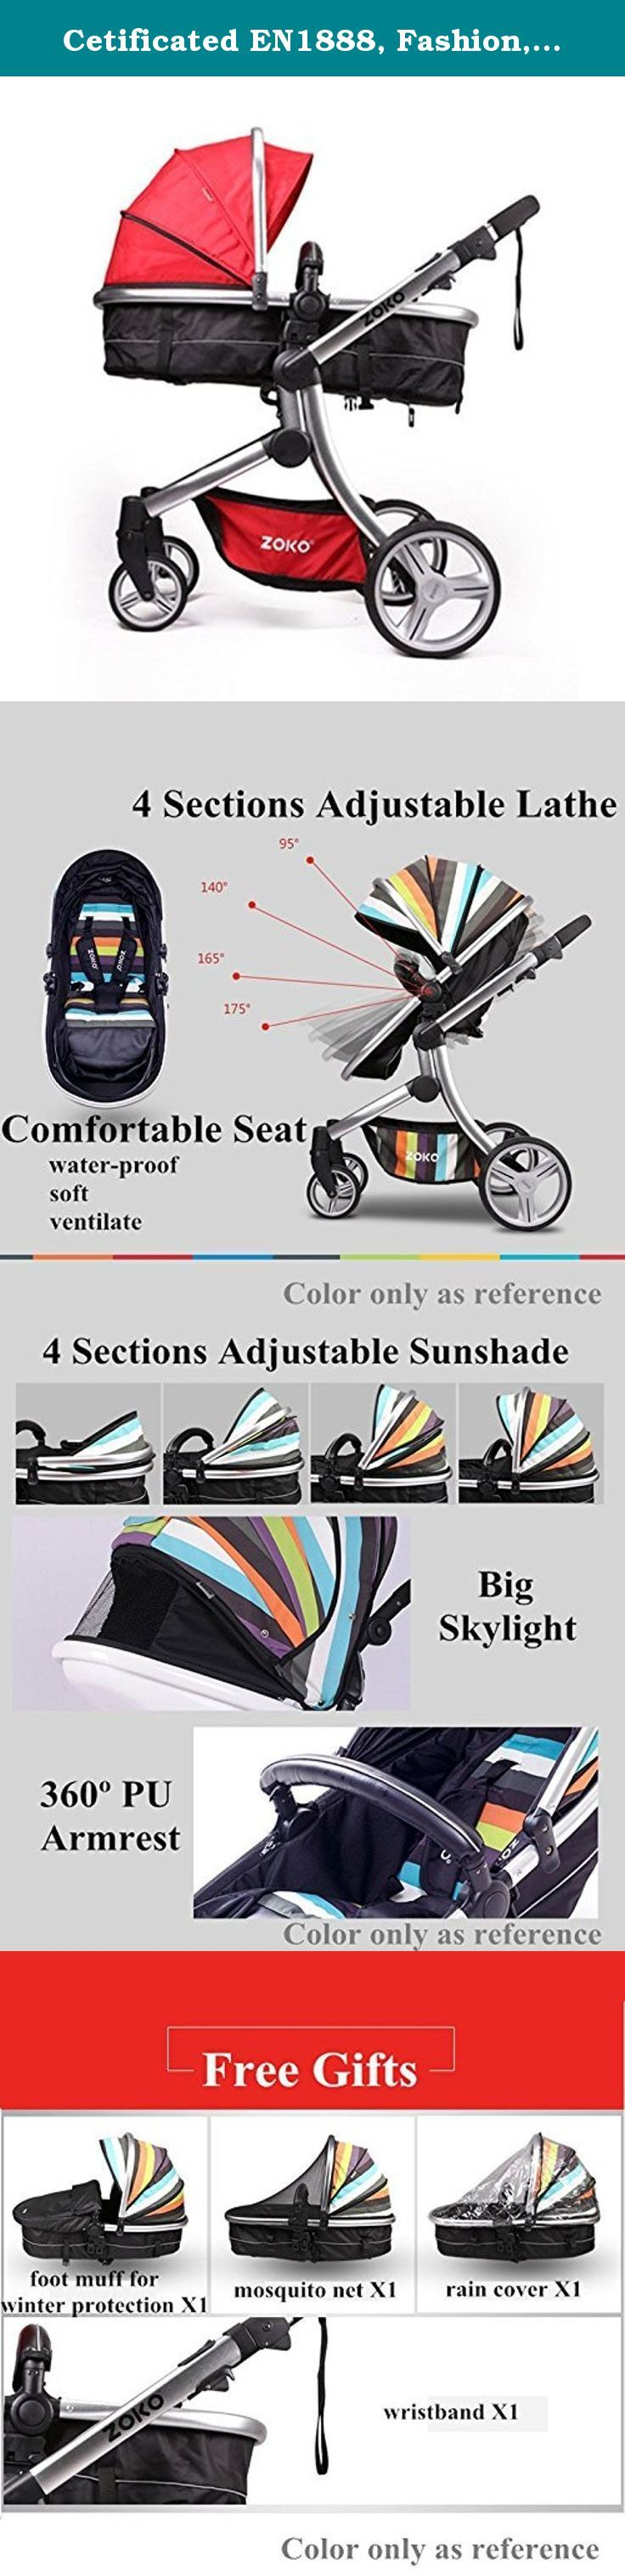 Some Specials of Our Stroller 1 Our strollers are with higher ground clearance than others